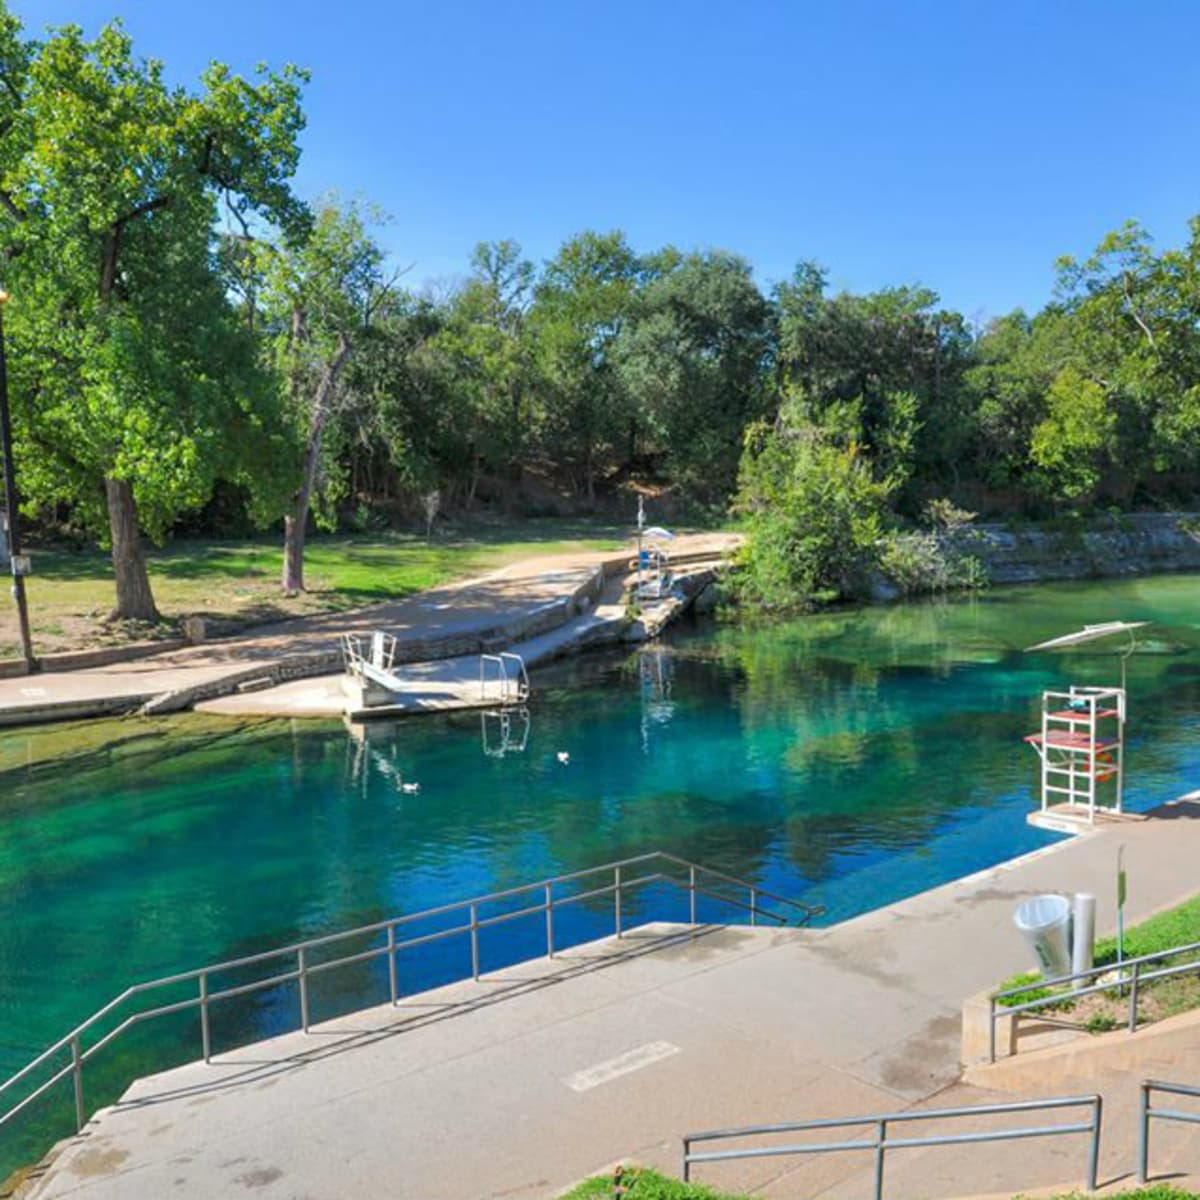 Barton Springs Pool during the day